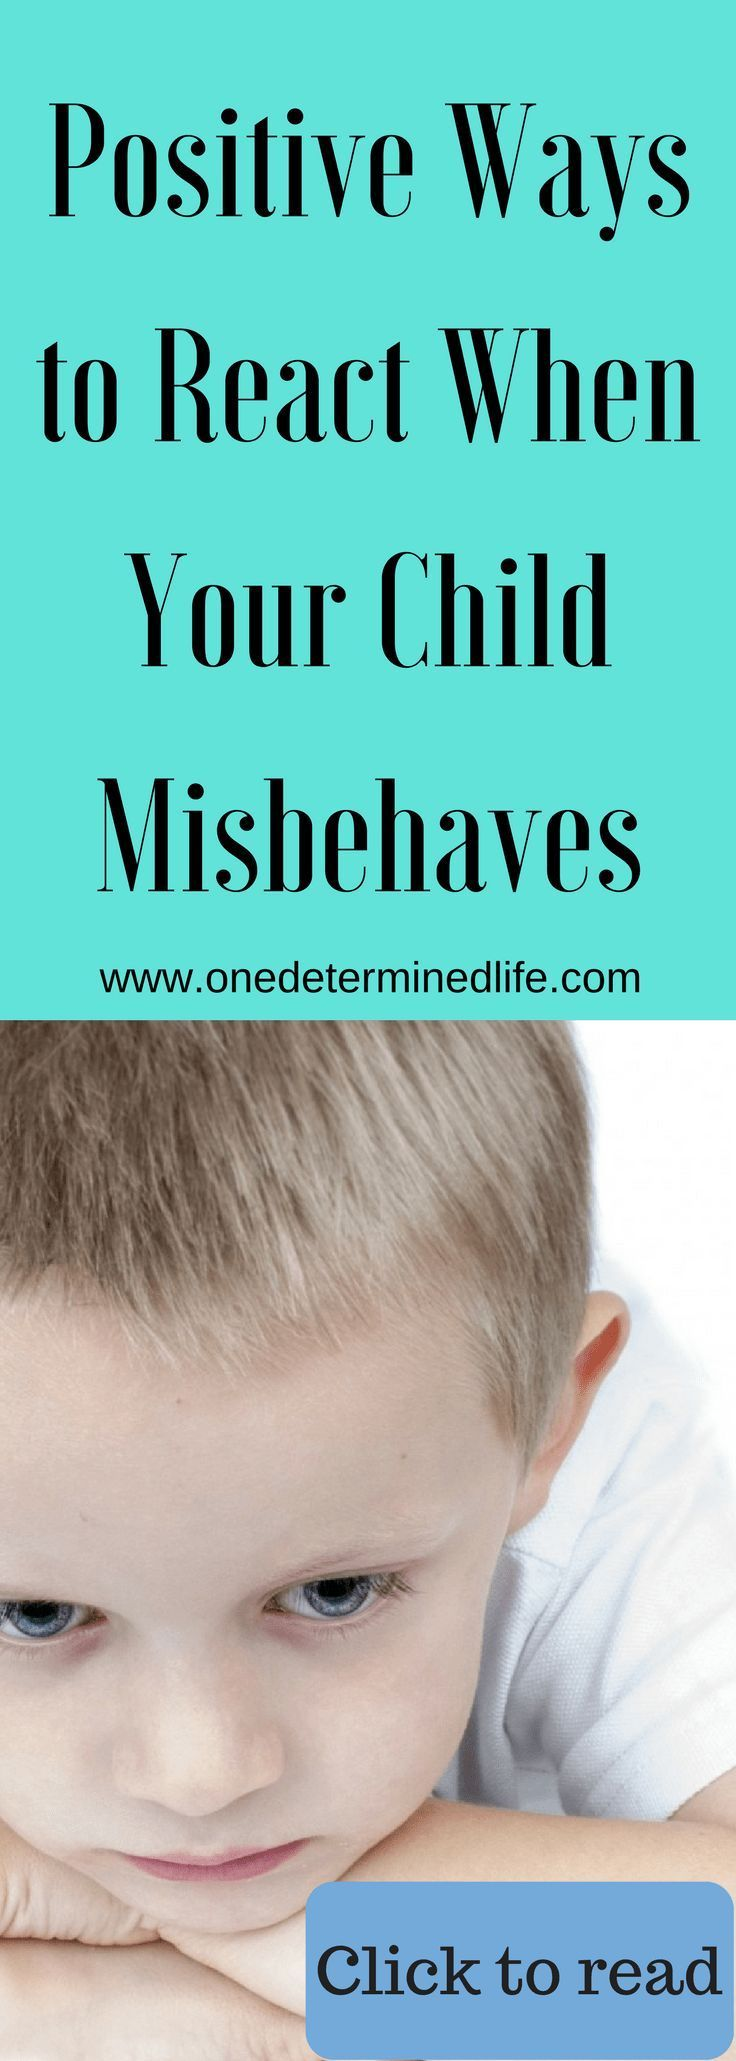 Parenting tips, help for parenting, what to do when your child misbehaves, discipline tips, #parenting, #parentingtips, #parentinghelp